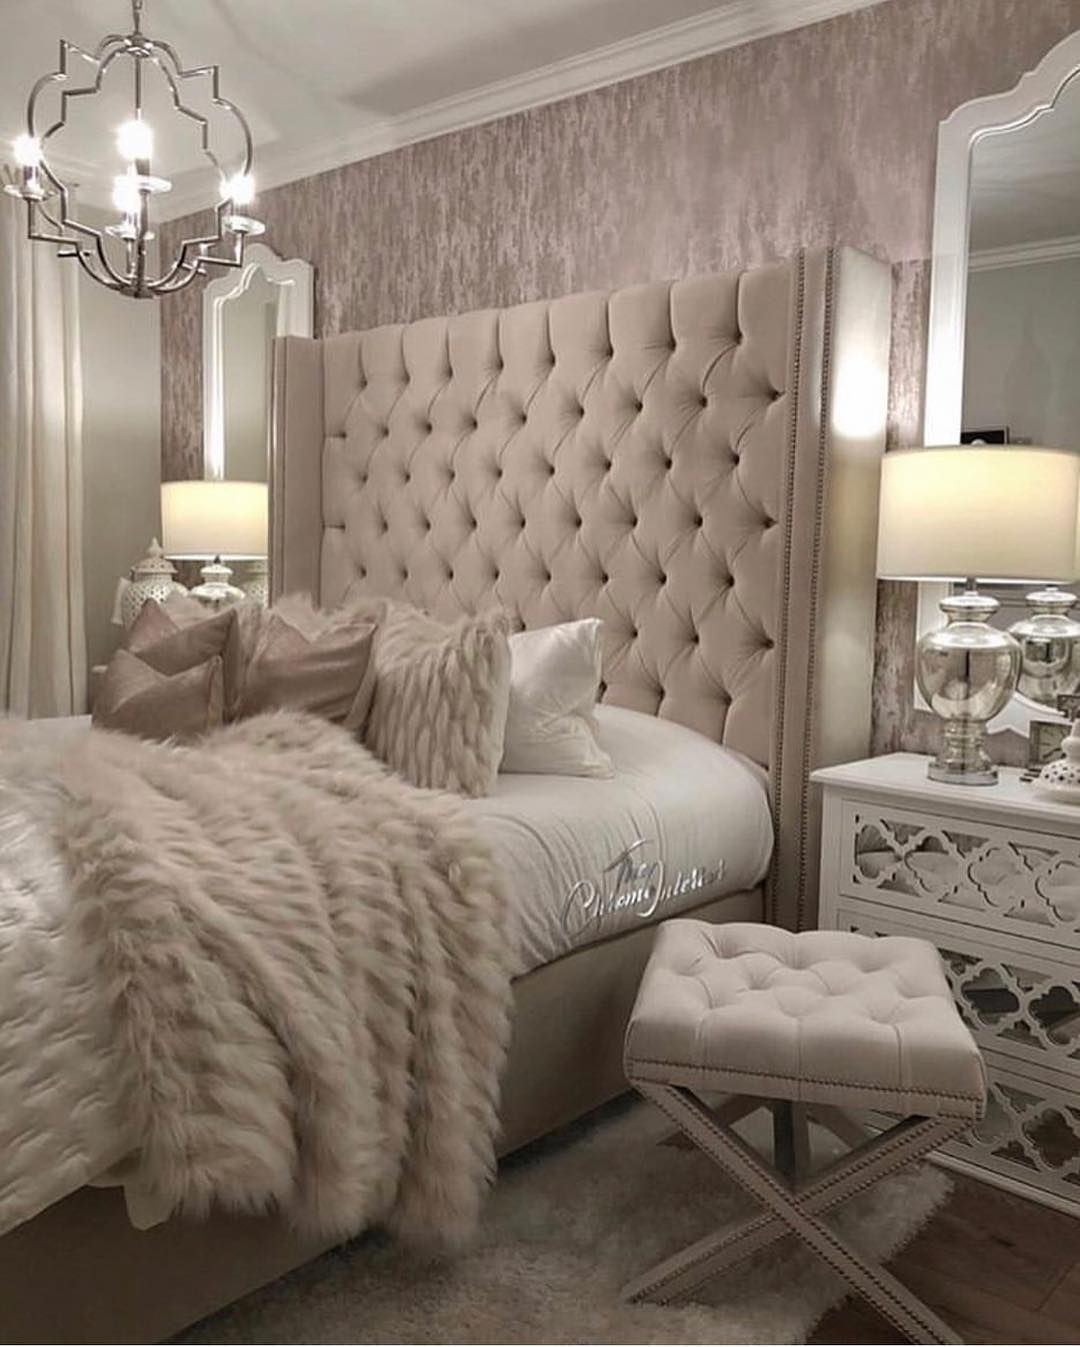 Chachou Interior Design Decor On Instagram Sunday The Day For Rest Mention This To A Friend Bedroom Interior Home Decor Bedroom Stylish Bedroom Design